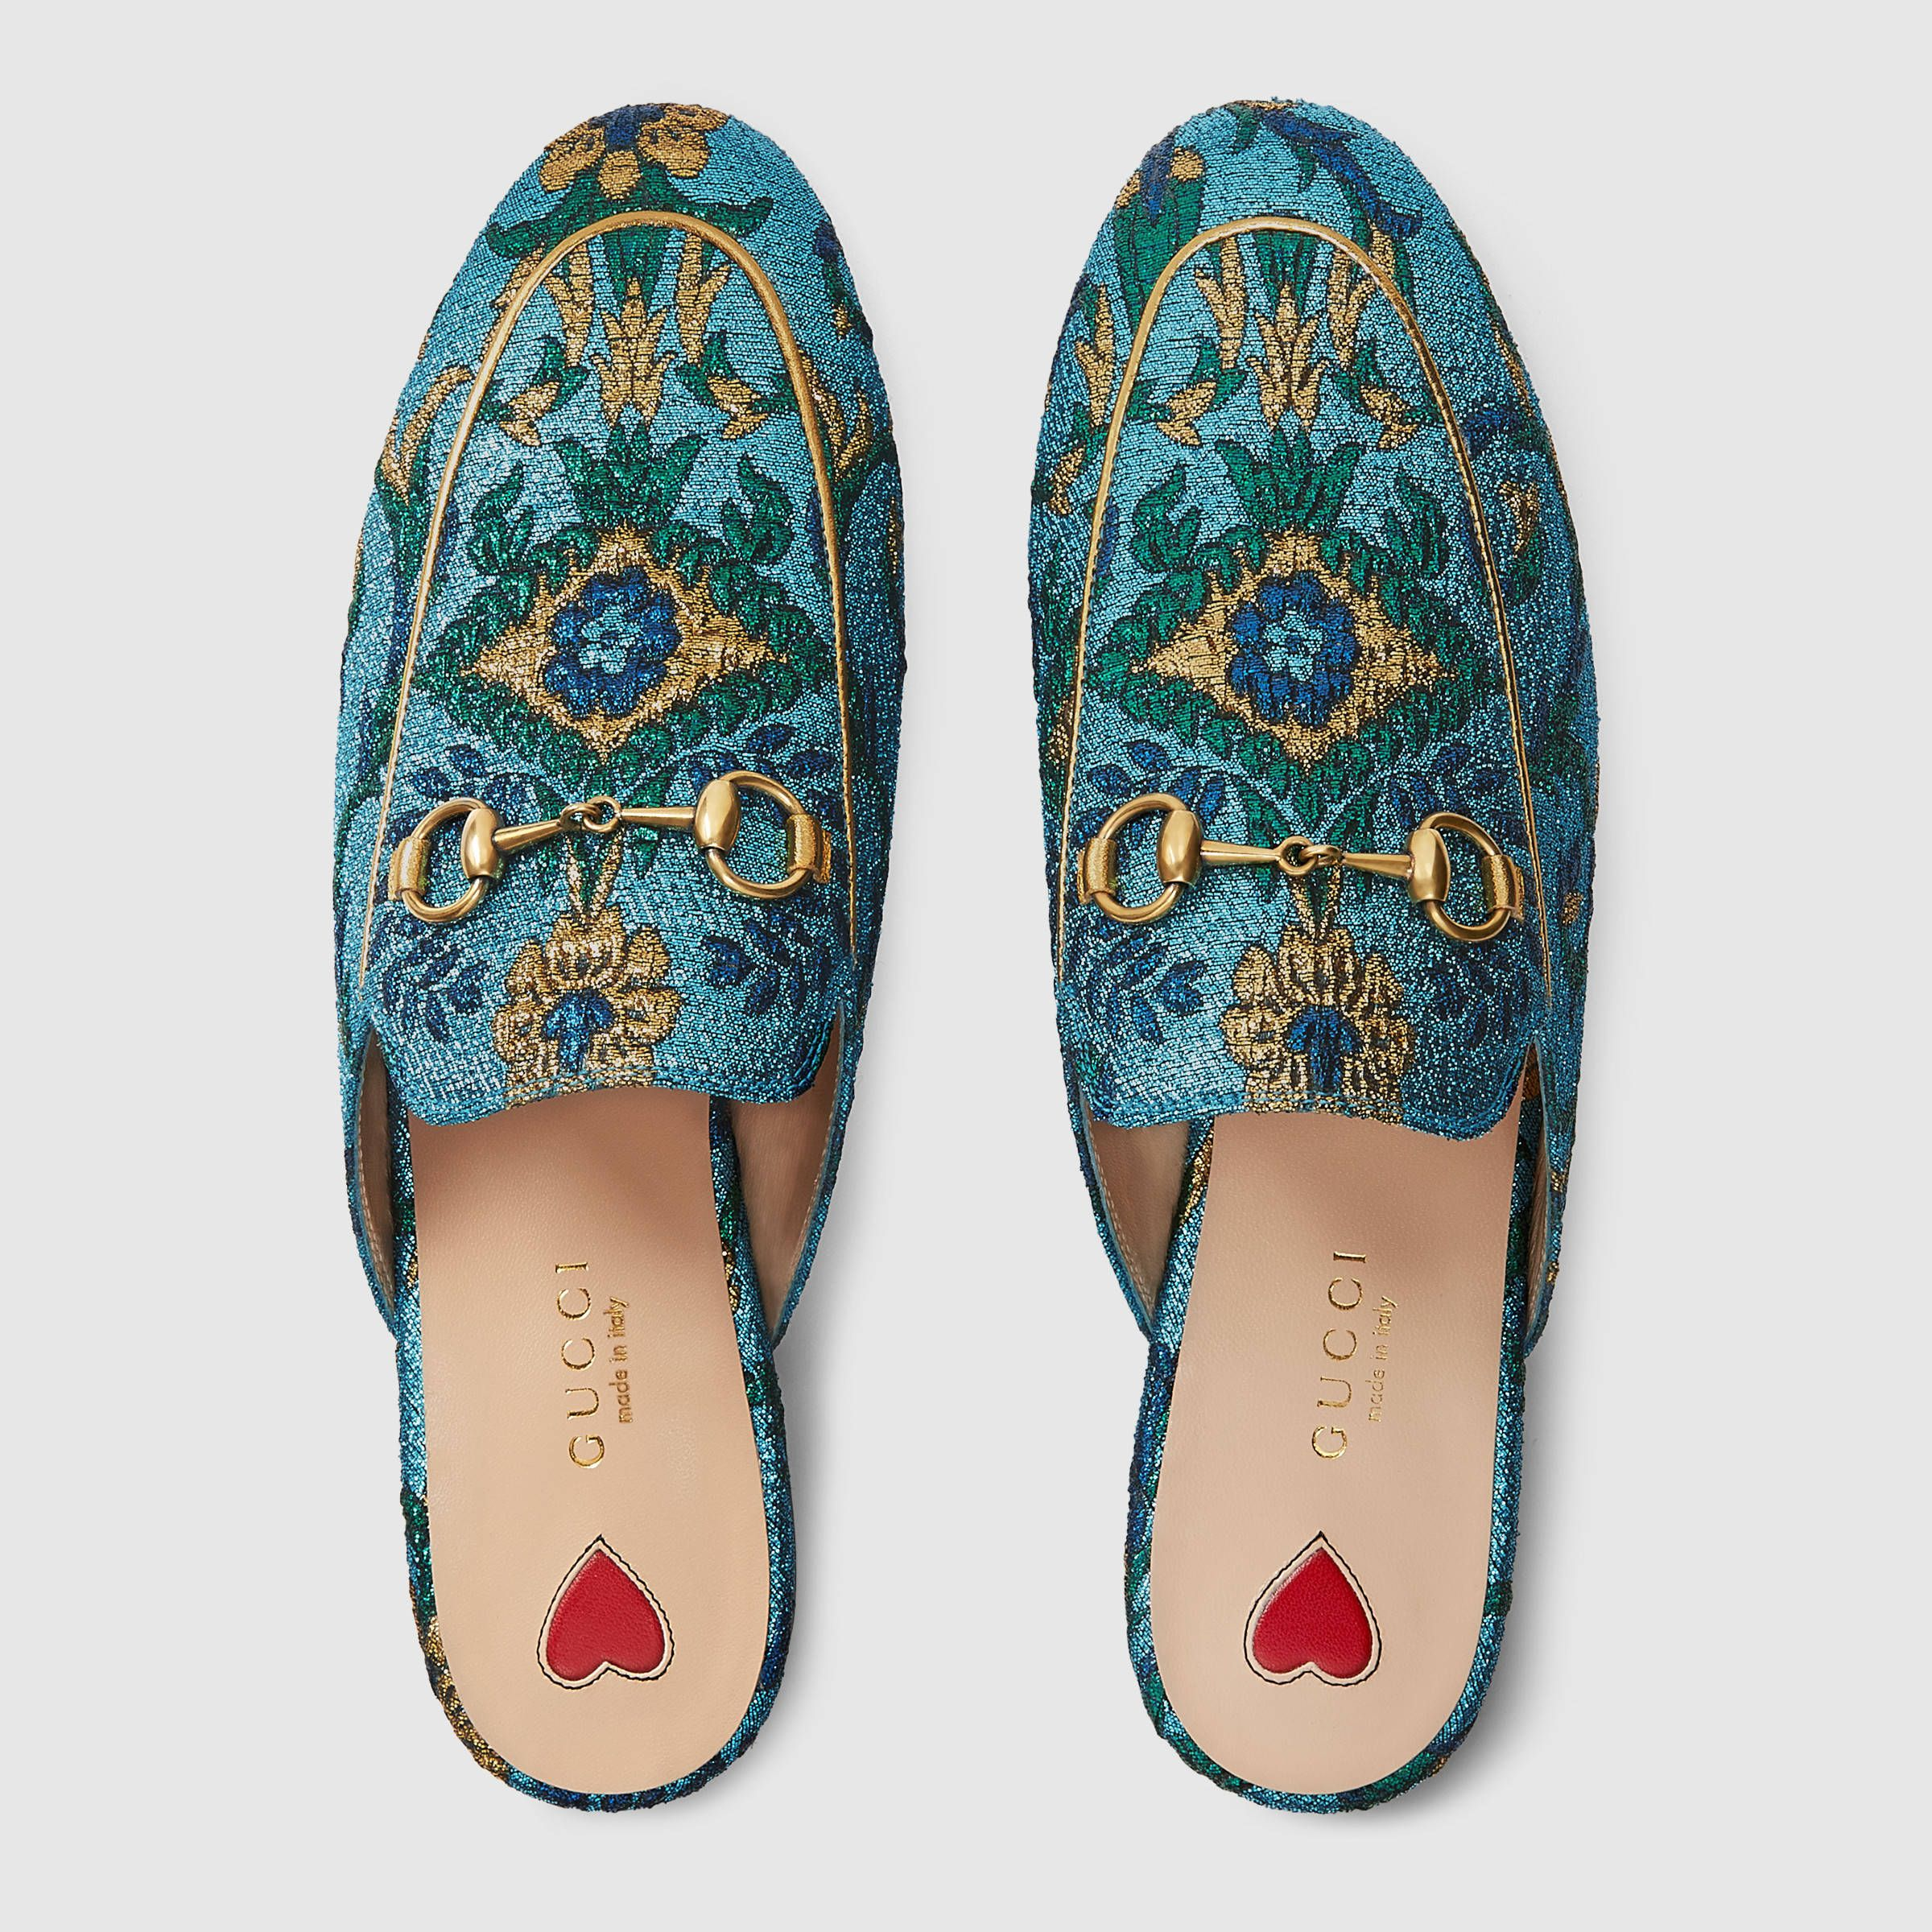 Princetown brocade slipper - Gucci Women s Moccasins   Loafers  472640K9O204967 08ba31cfd67